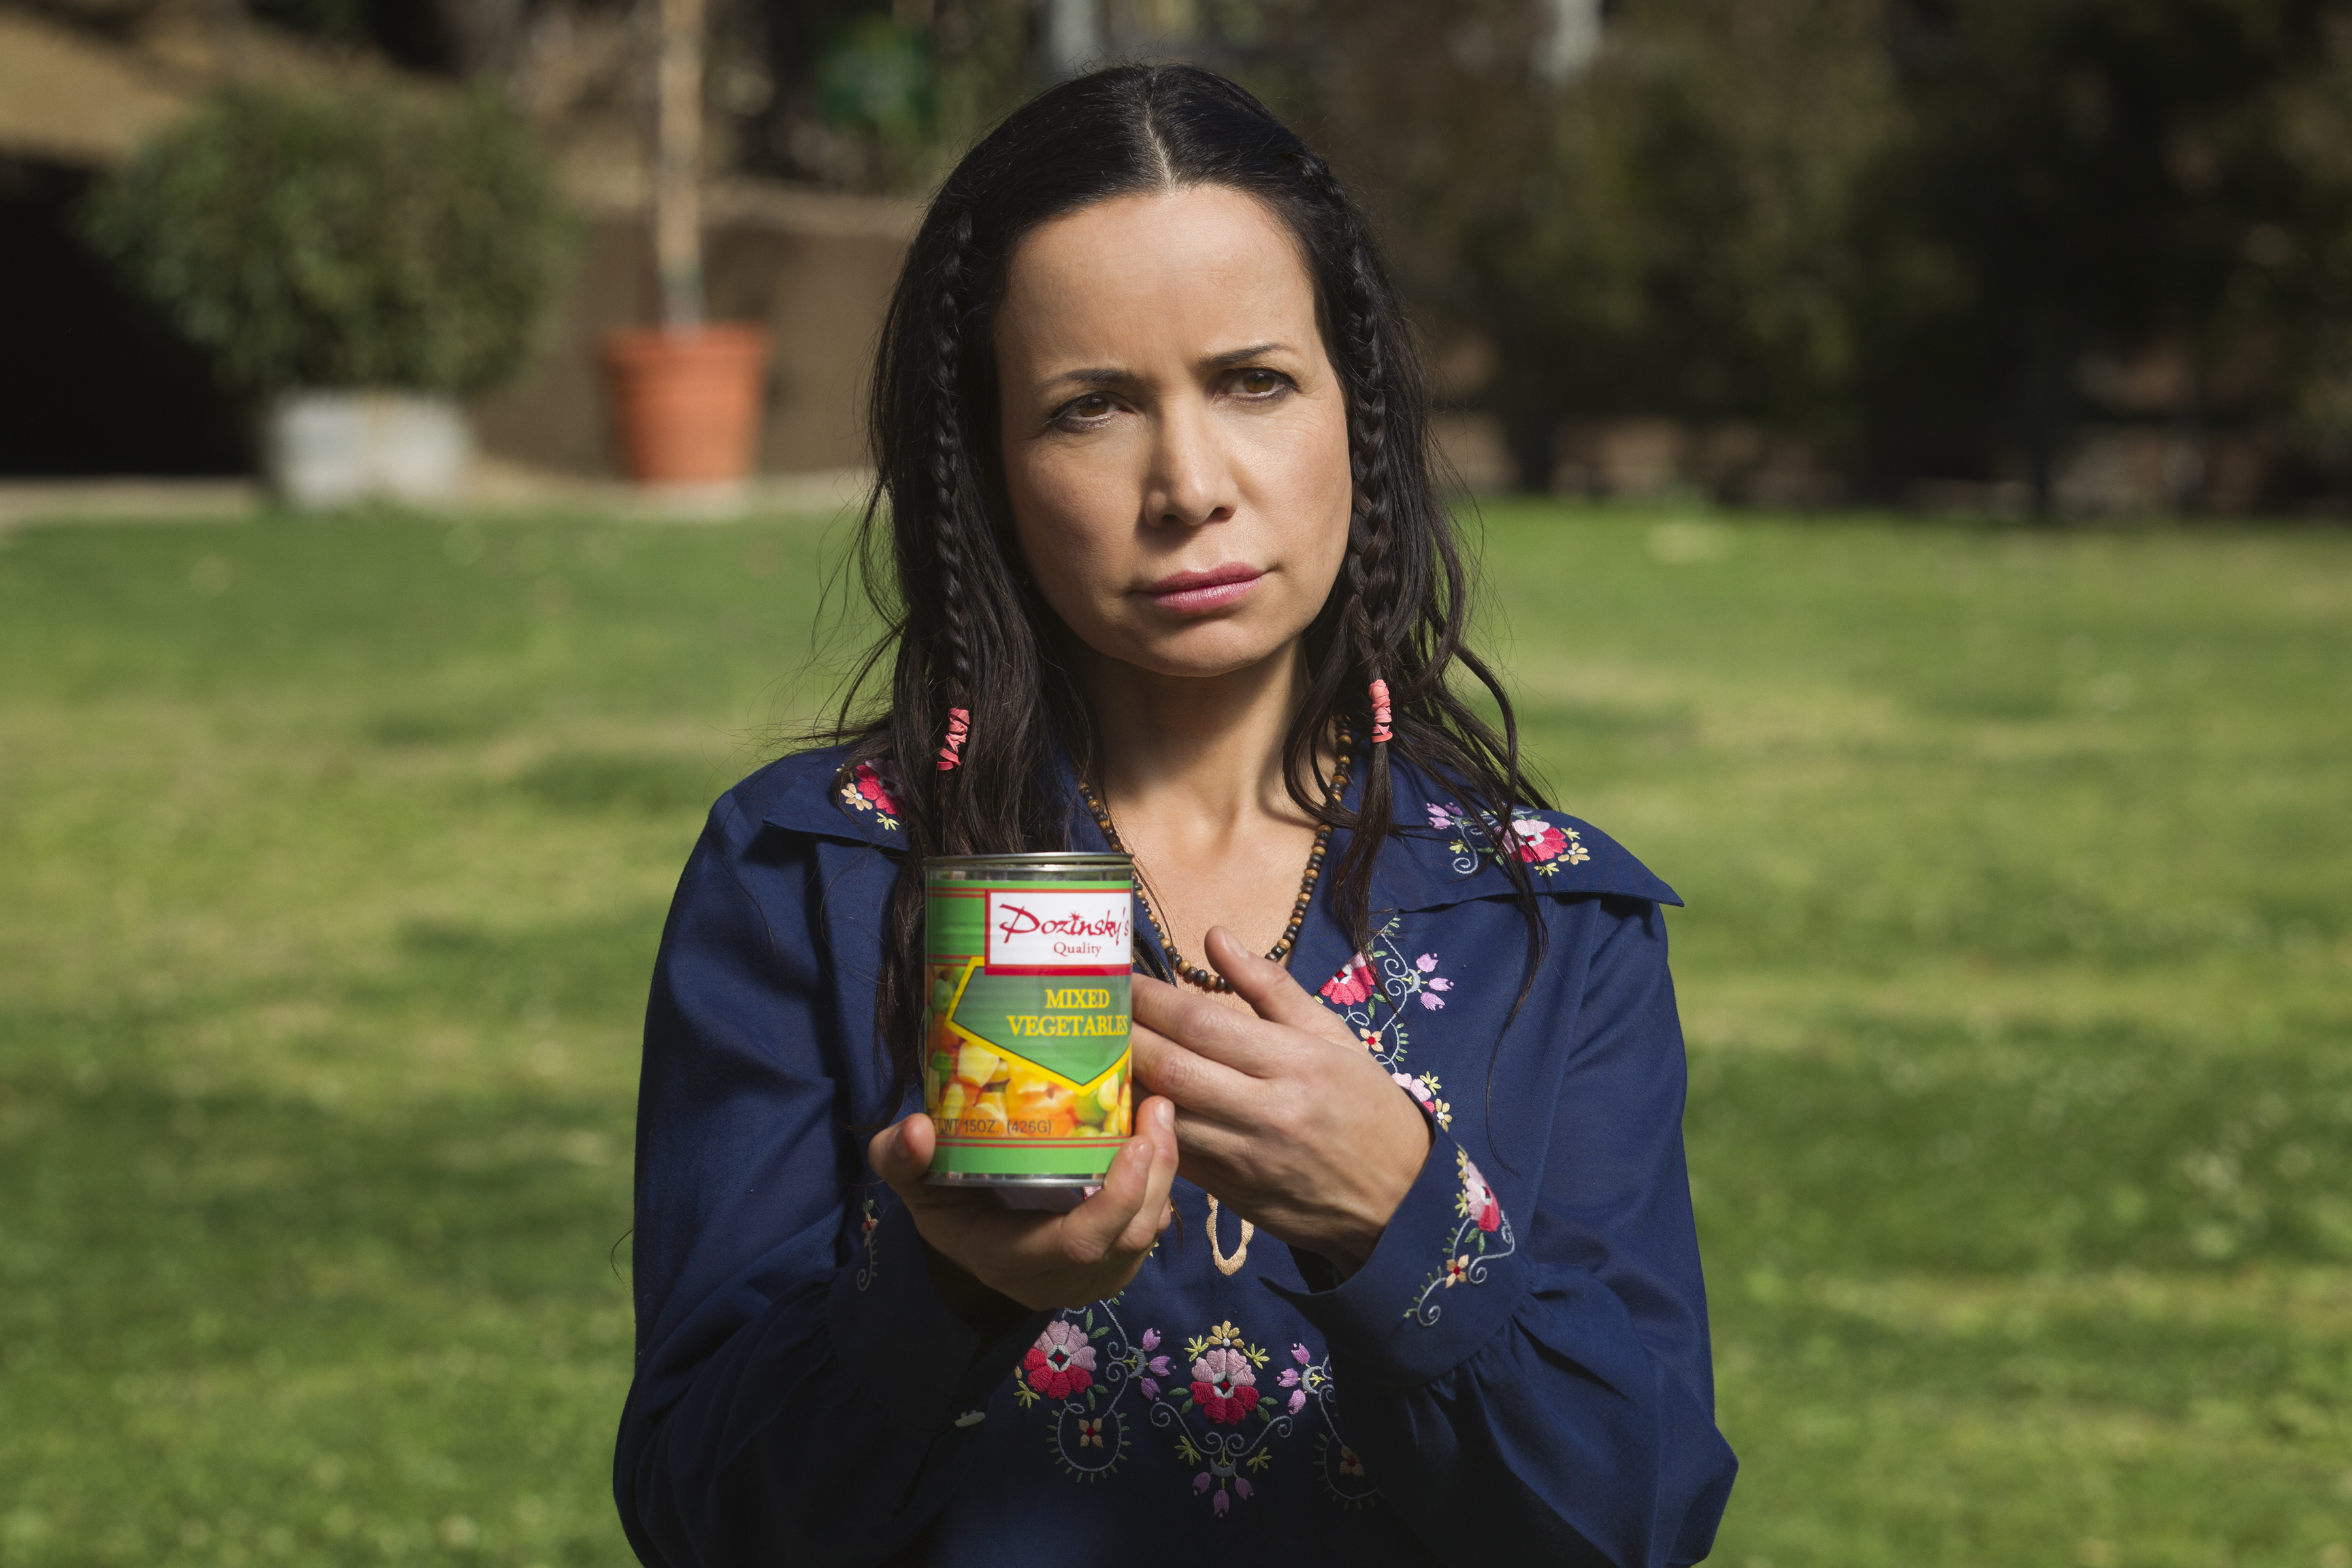 Janeane Garofalo returns to Camp Firewood in Netflix's Wet Hot American Summer: First Day of Camp.